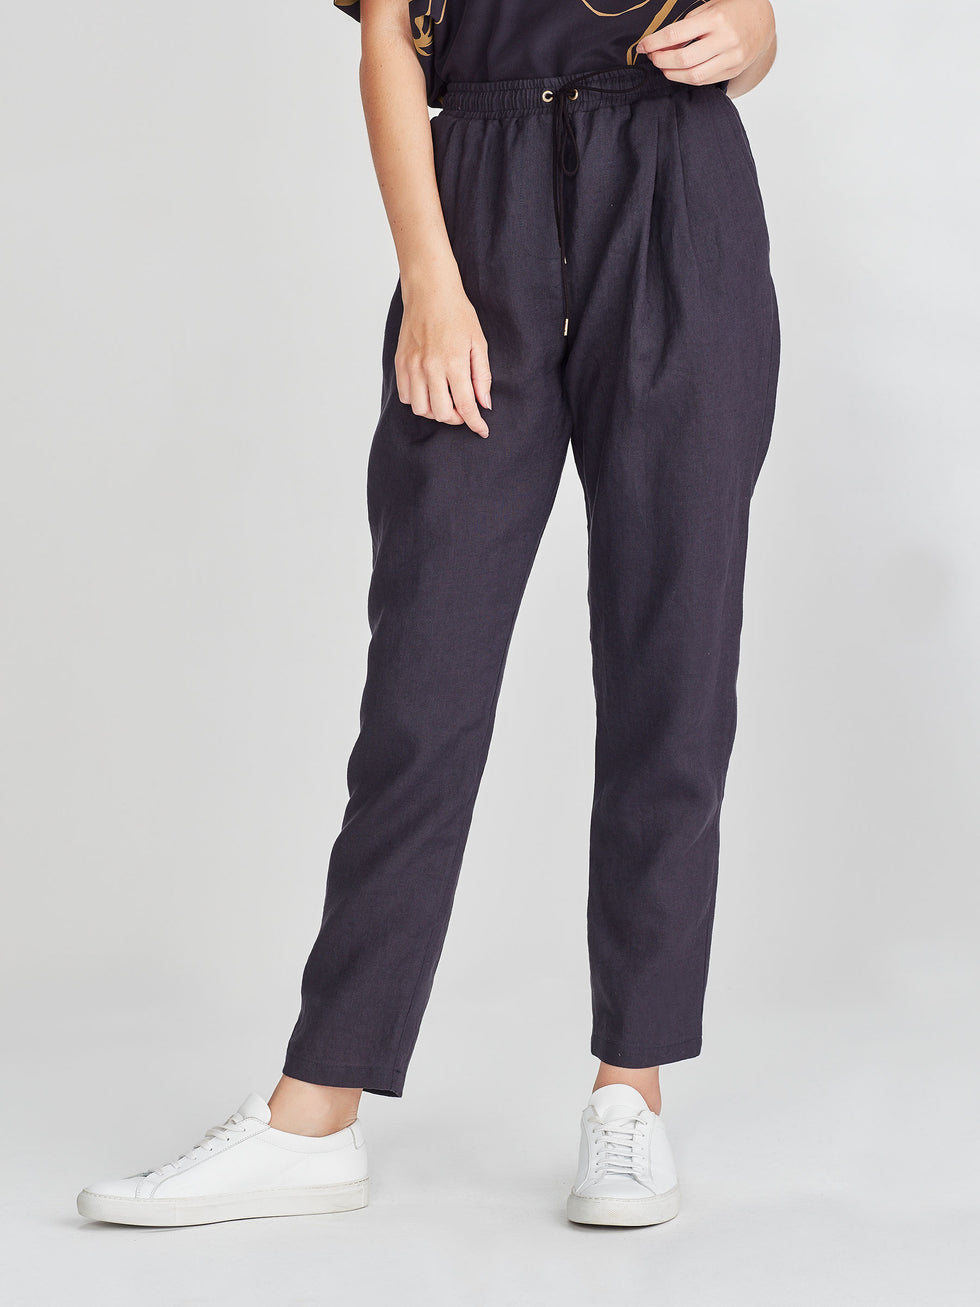 Lorne Pant (Summer Linen) Ink